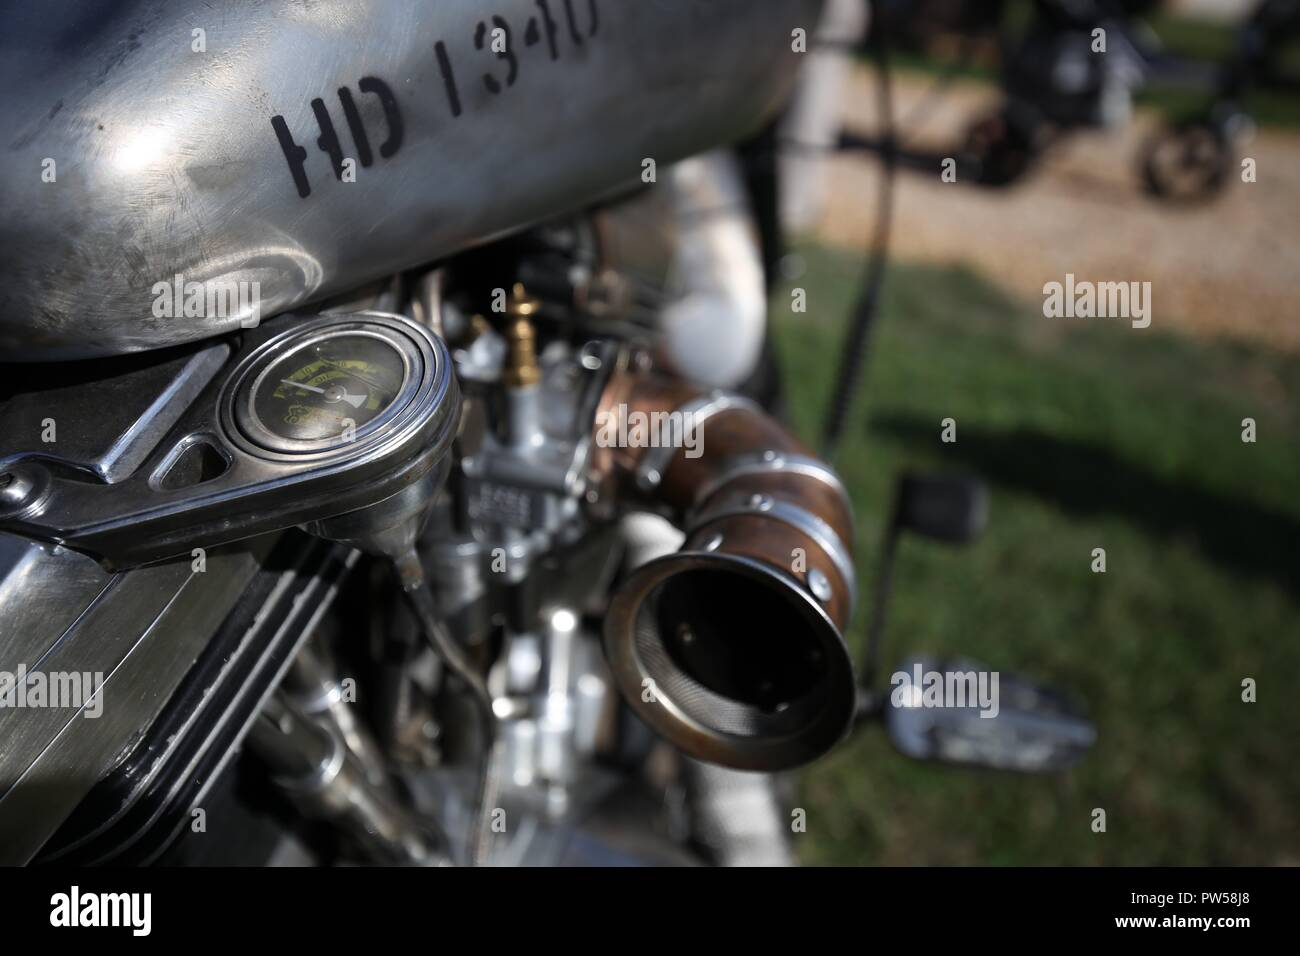 Hand crafted Harley Davidson at Château de Neuville in Gambais (78) – France. - Stock Image